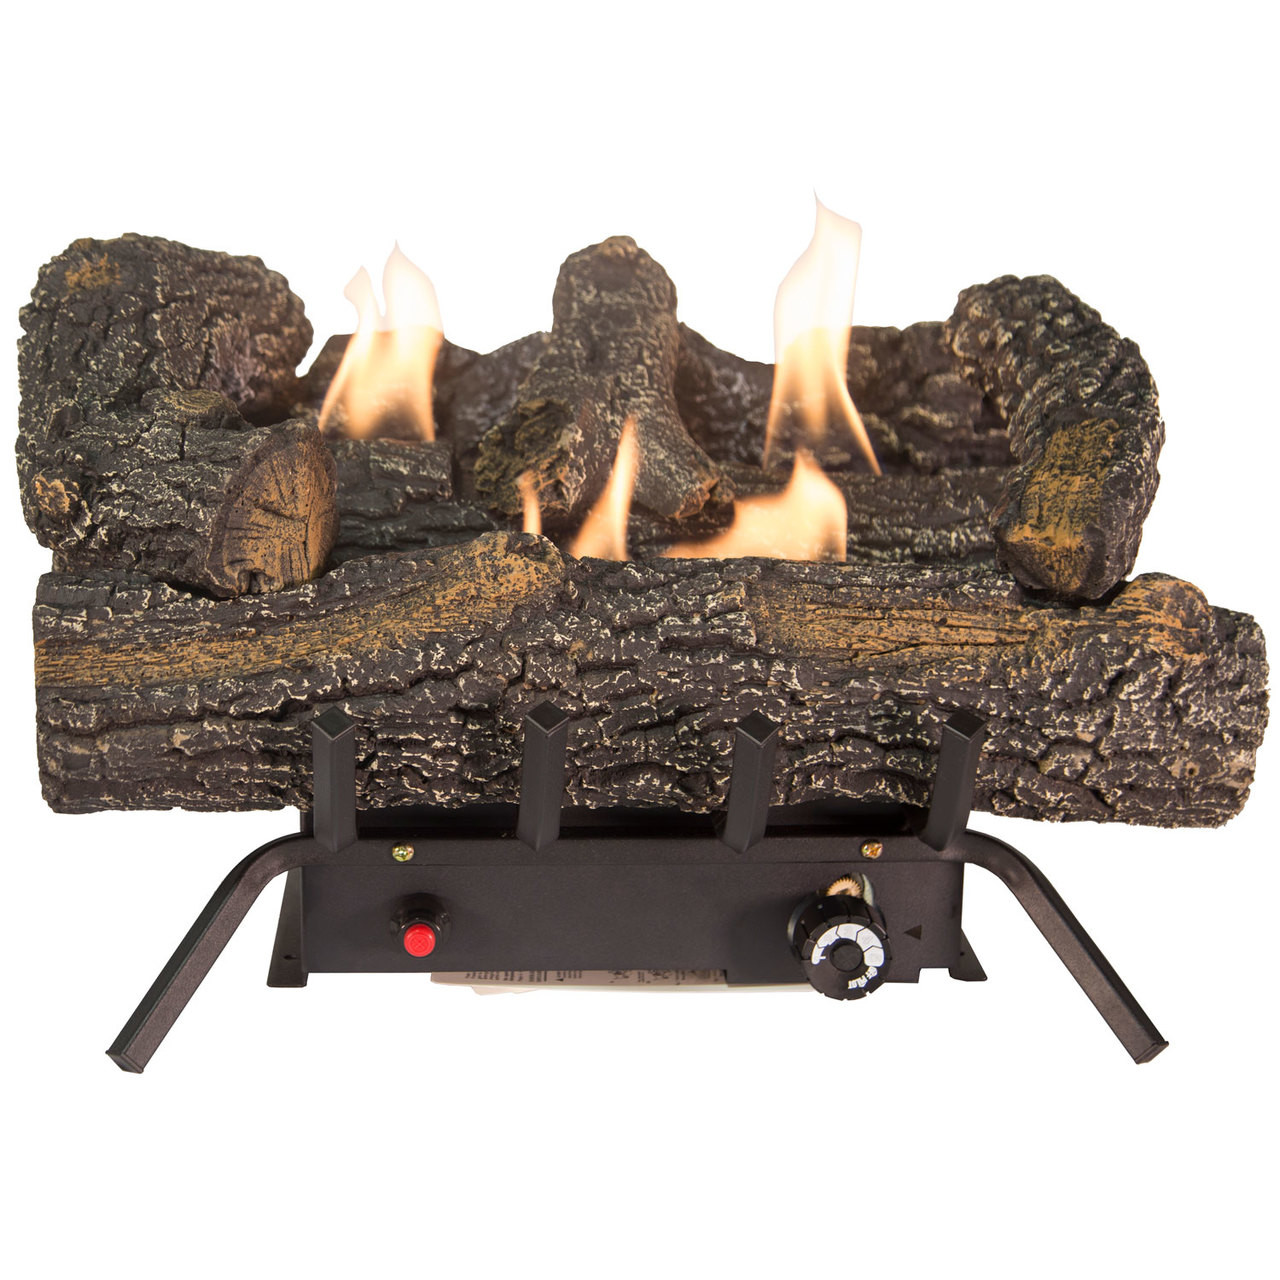 Comfort Glow Gld1856t Propane Lp Or Natural Gas Ng Vent Free 18 In Black Forest Log Set 30 000 Btus World Marketing Of America Inc